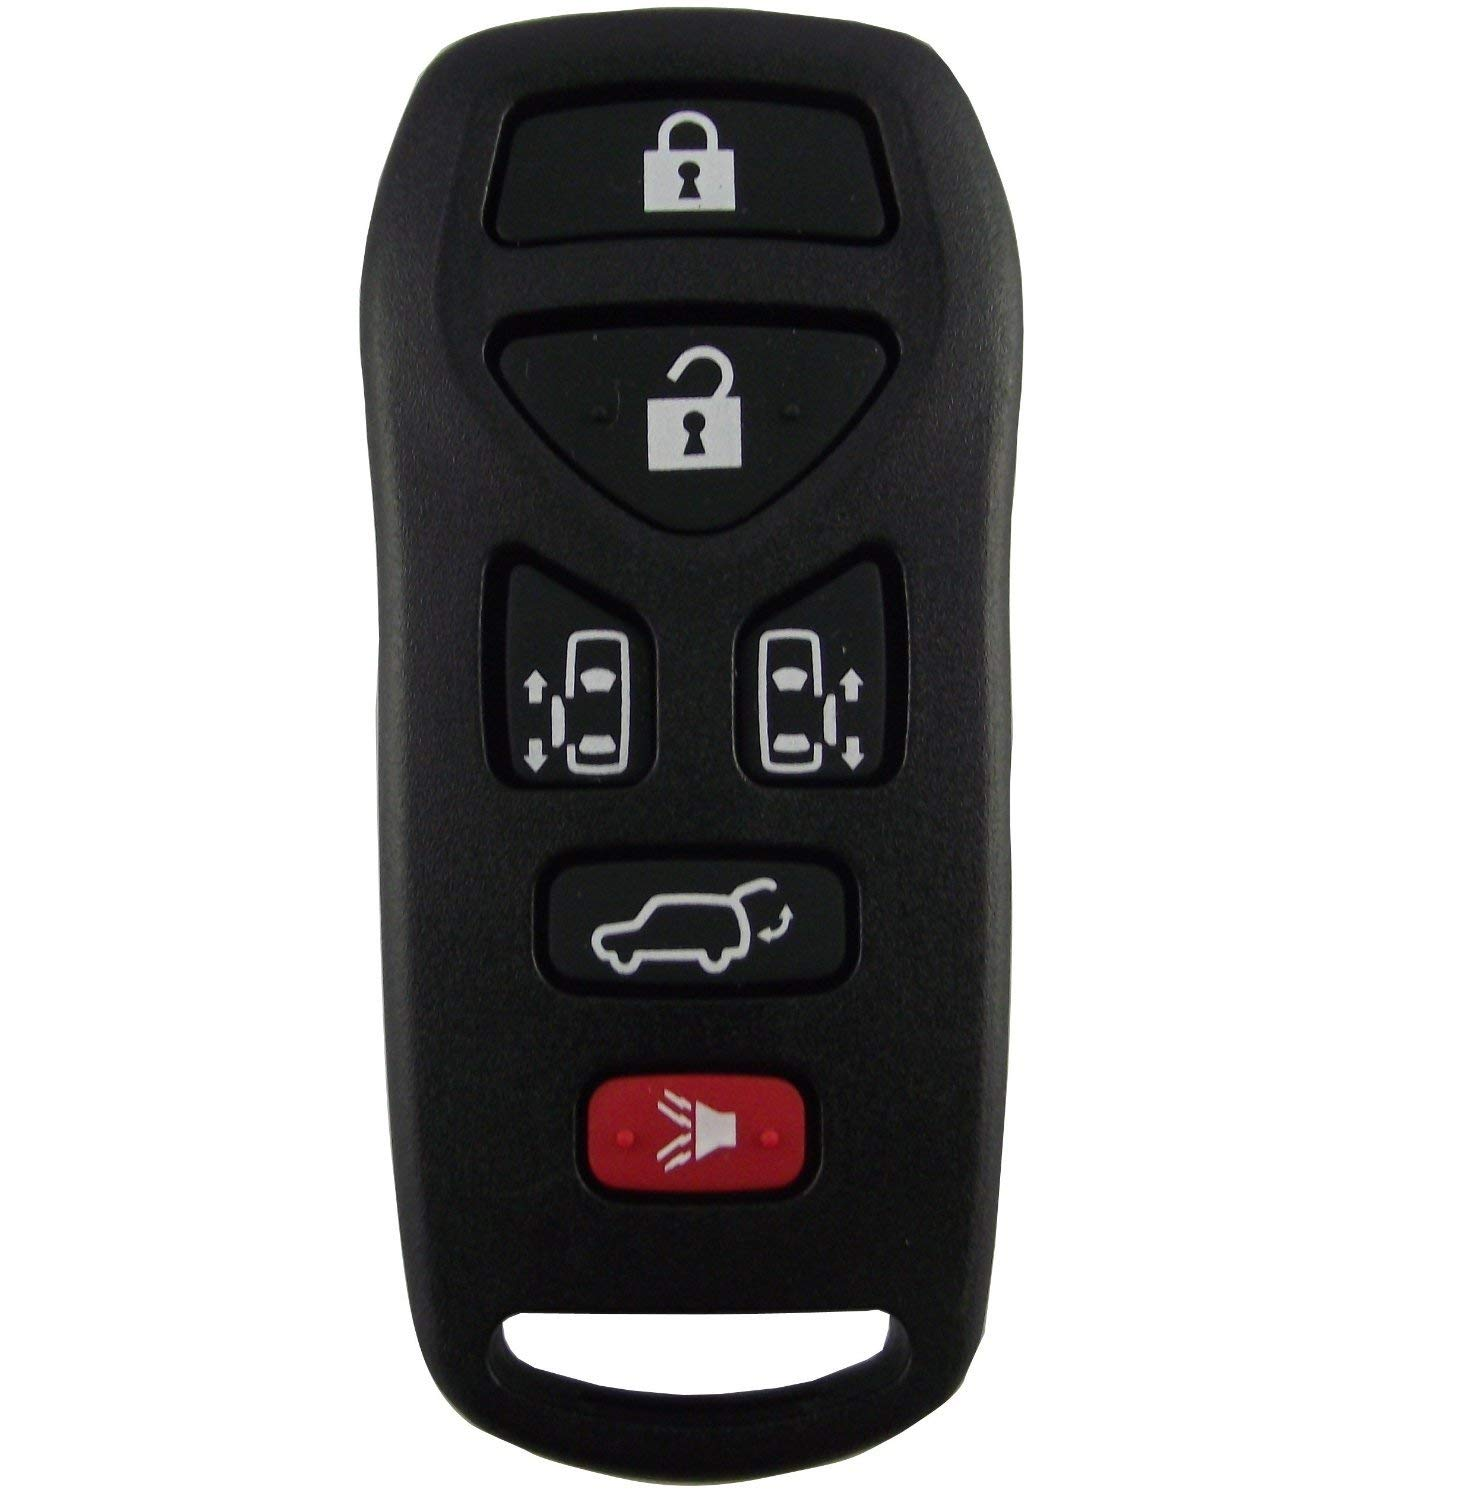 Replacement Keyless Remote Fob Key Shell Case For 2004 2005 2006 2007 2008 2009 Nissan Quest 6 button key shell KBRASTU51